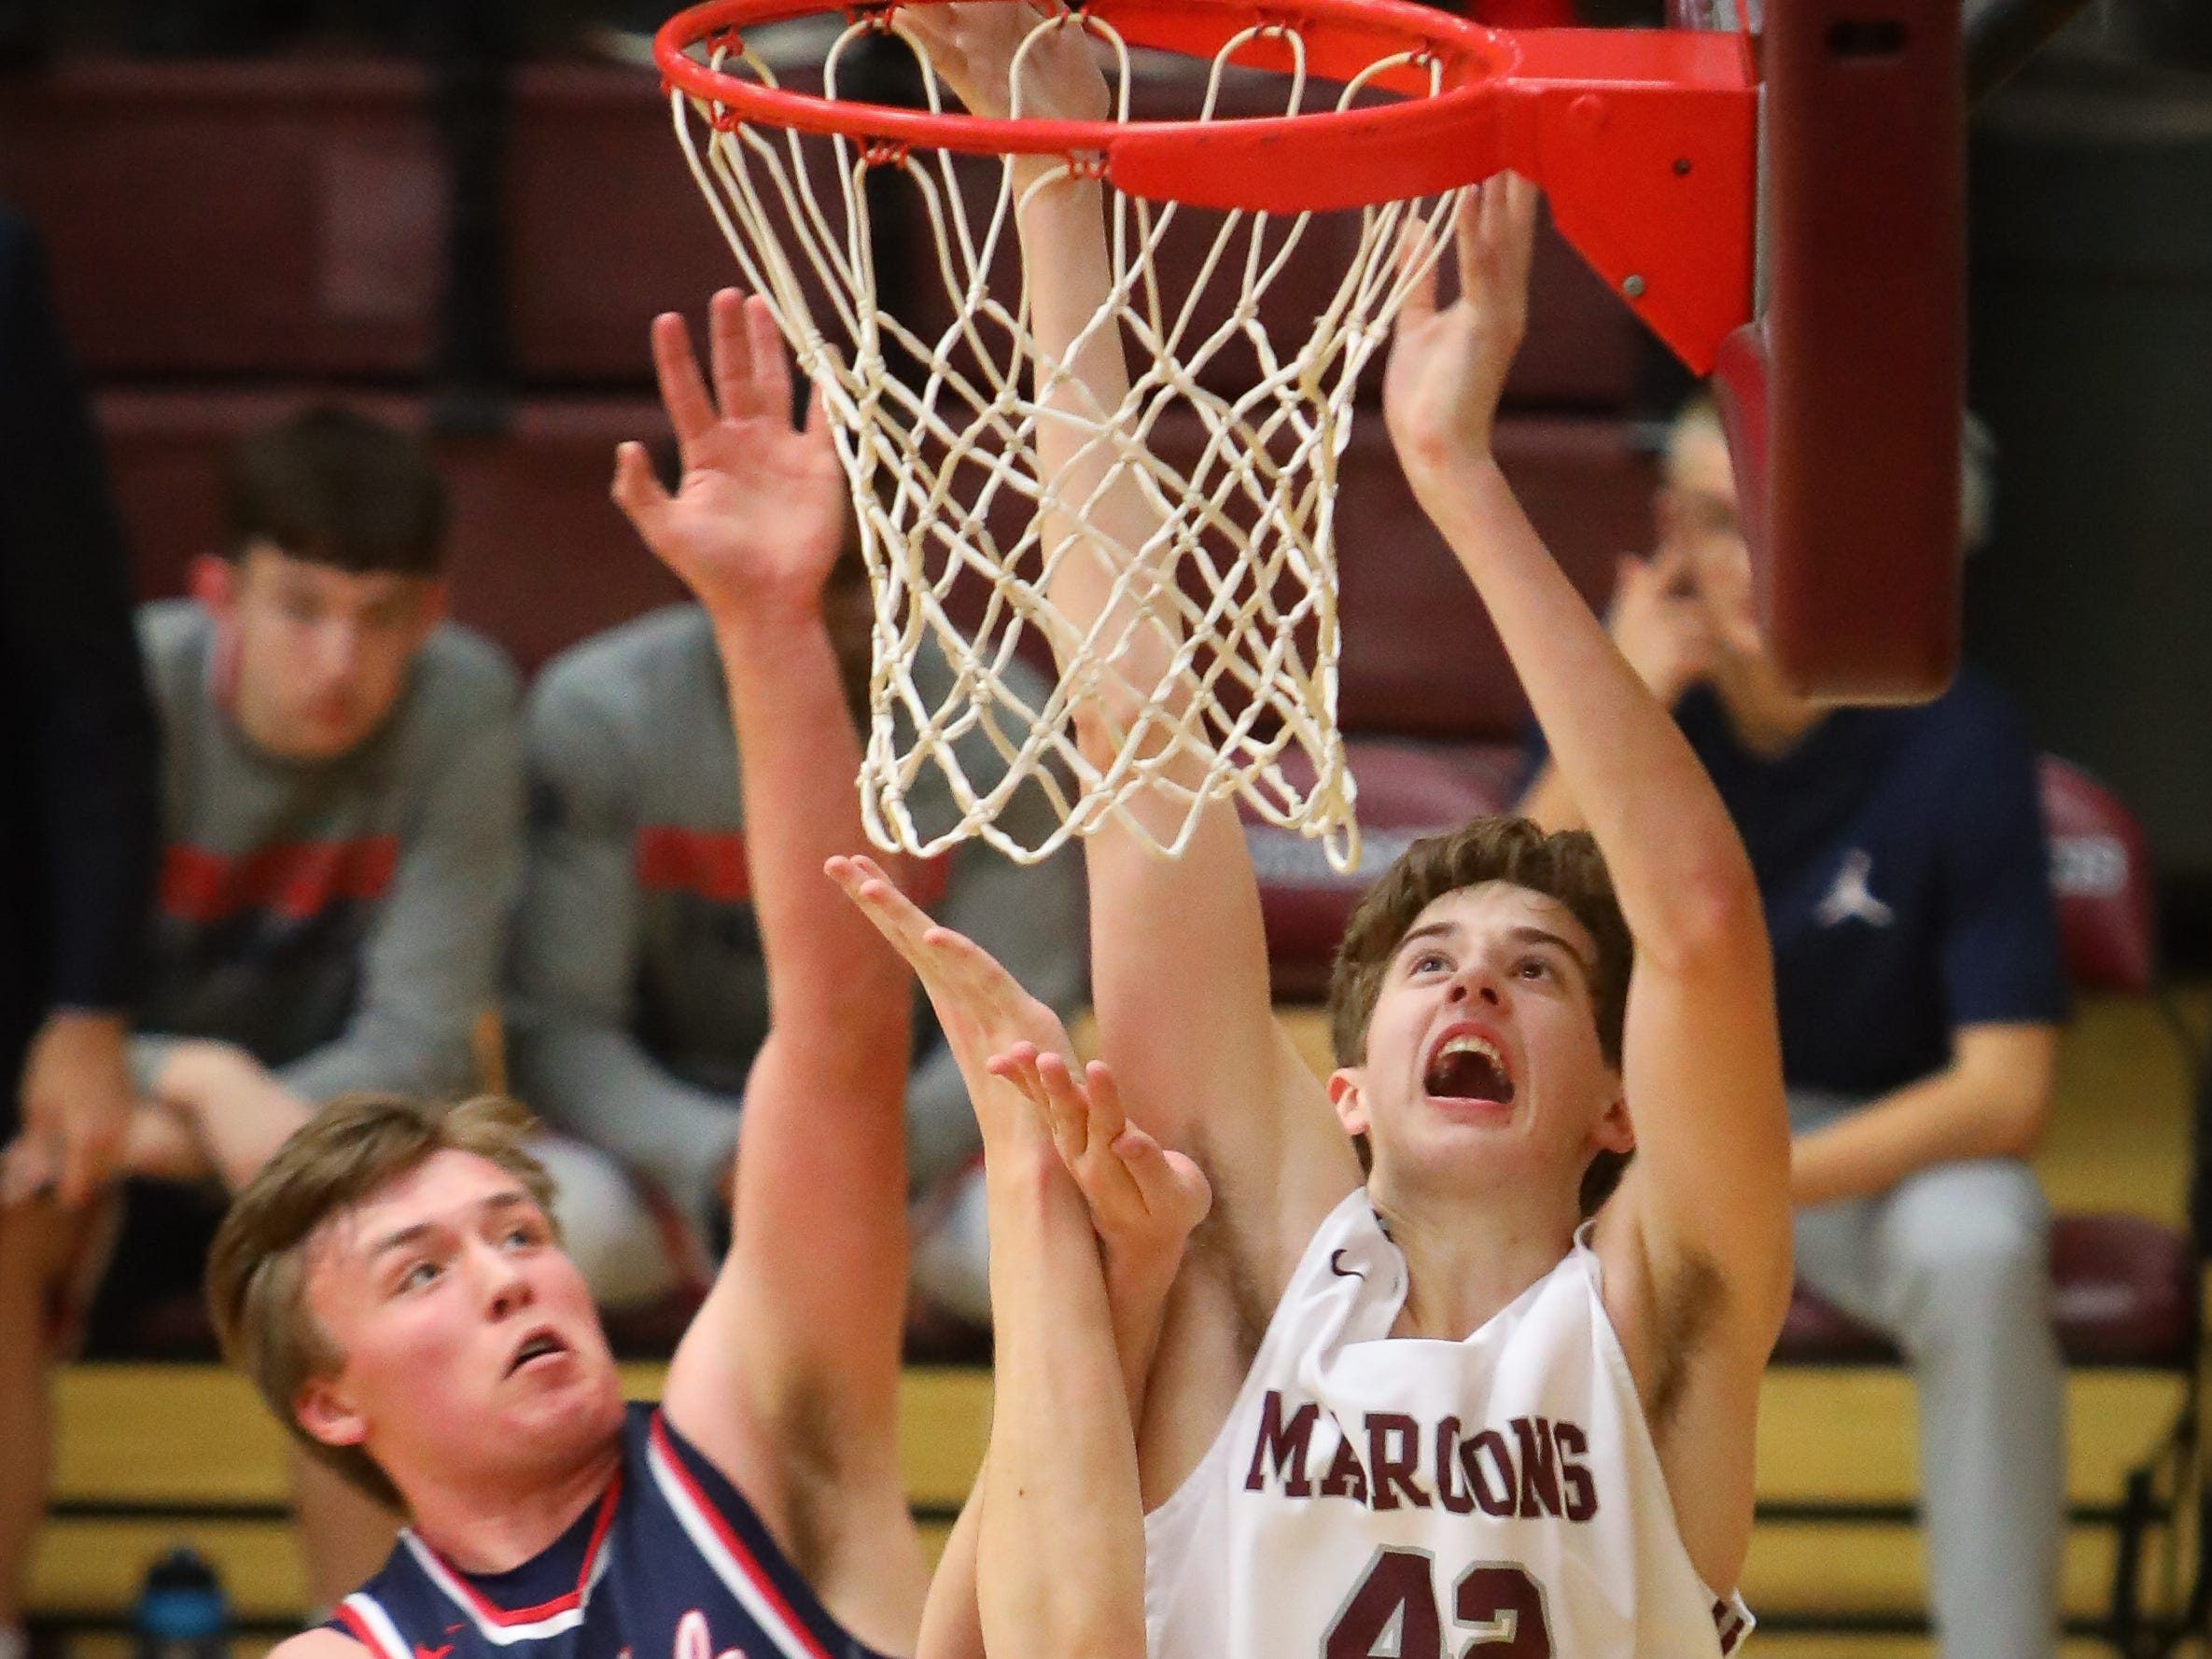 Dowling junior Drew Daniel tips the ball into the basket during a boys high school basketball game between the Urbandale J-Hawks and the Dowling Catholic Maroons at Dowling Catholic High School on Jan. 11, 2019 in West Des Moines, Iowa.